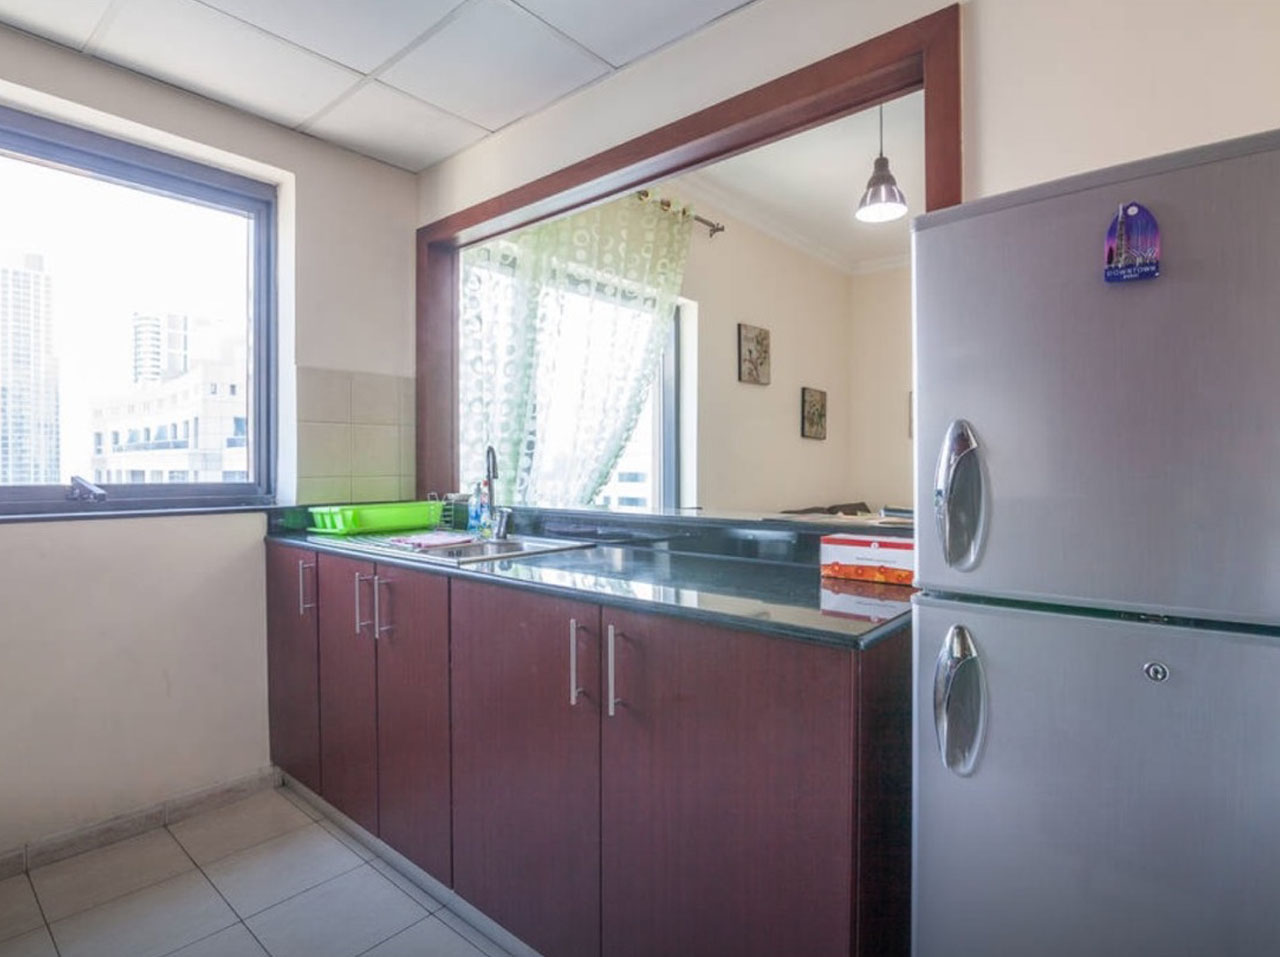 Kitchen Holiday apartment in Time Place Tower at Dubai Marina